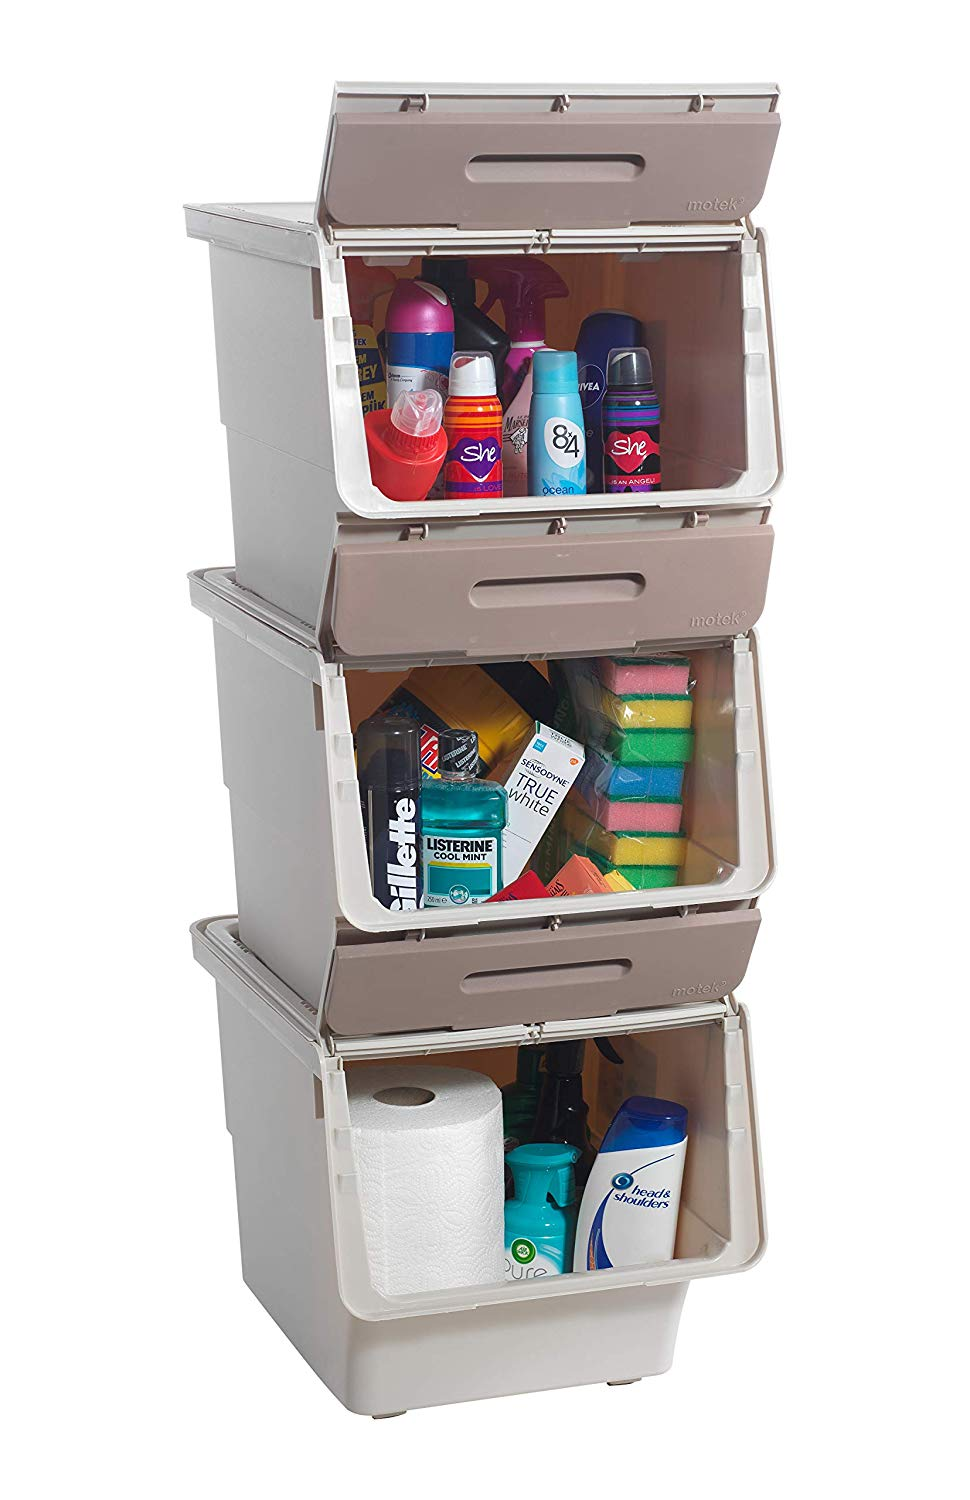 Mabel Home Storage Bins With Lid Stackable Storage Bins Set Of 3 Good For Kitchen Bathroom Garage Office 2 Size 4 Colour Extra Food Storage Container Included Brown Grey 14x18x37